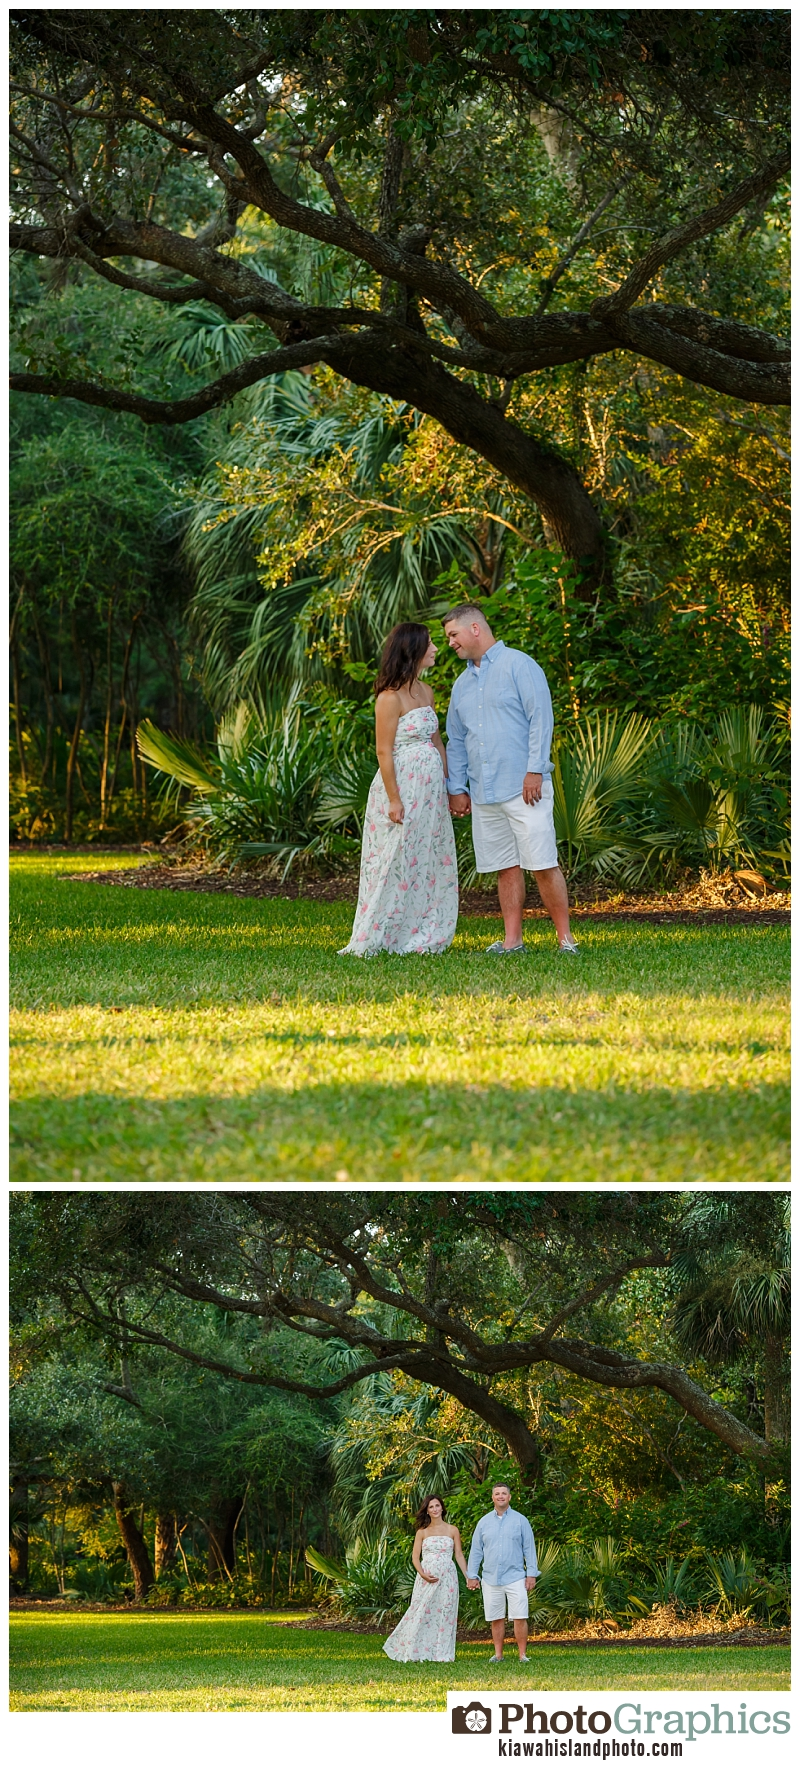 Couple at the park for maternity photography session - baby bump photos Kiawah Island